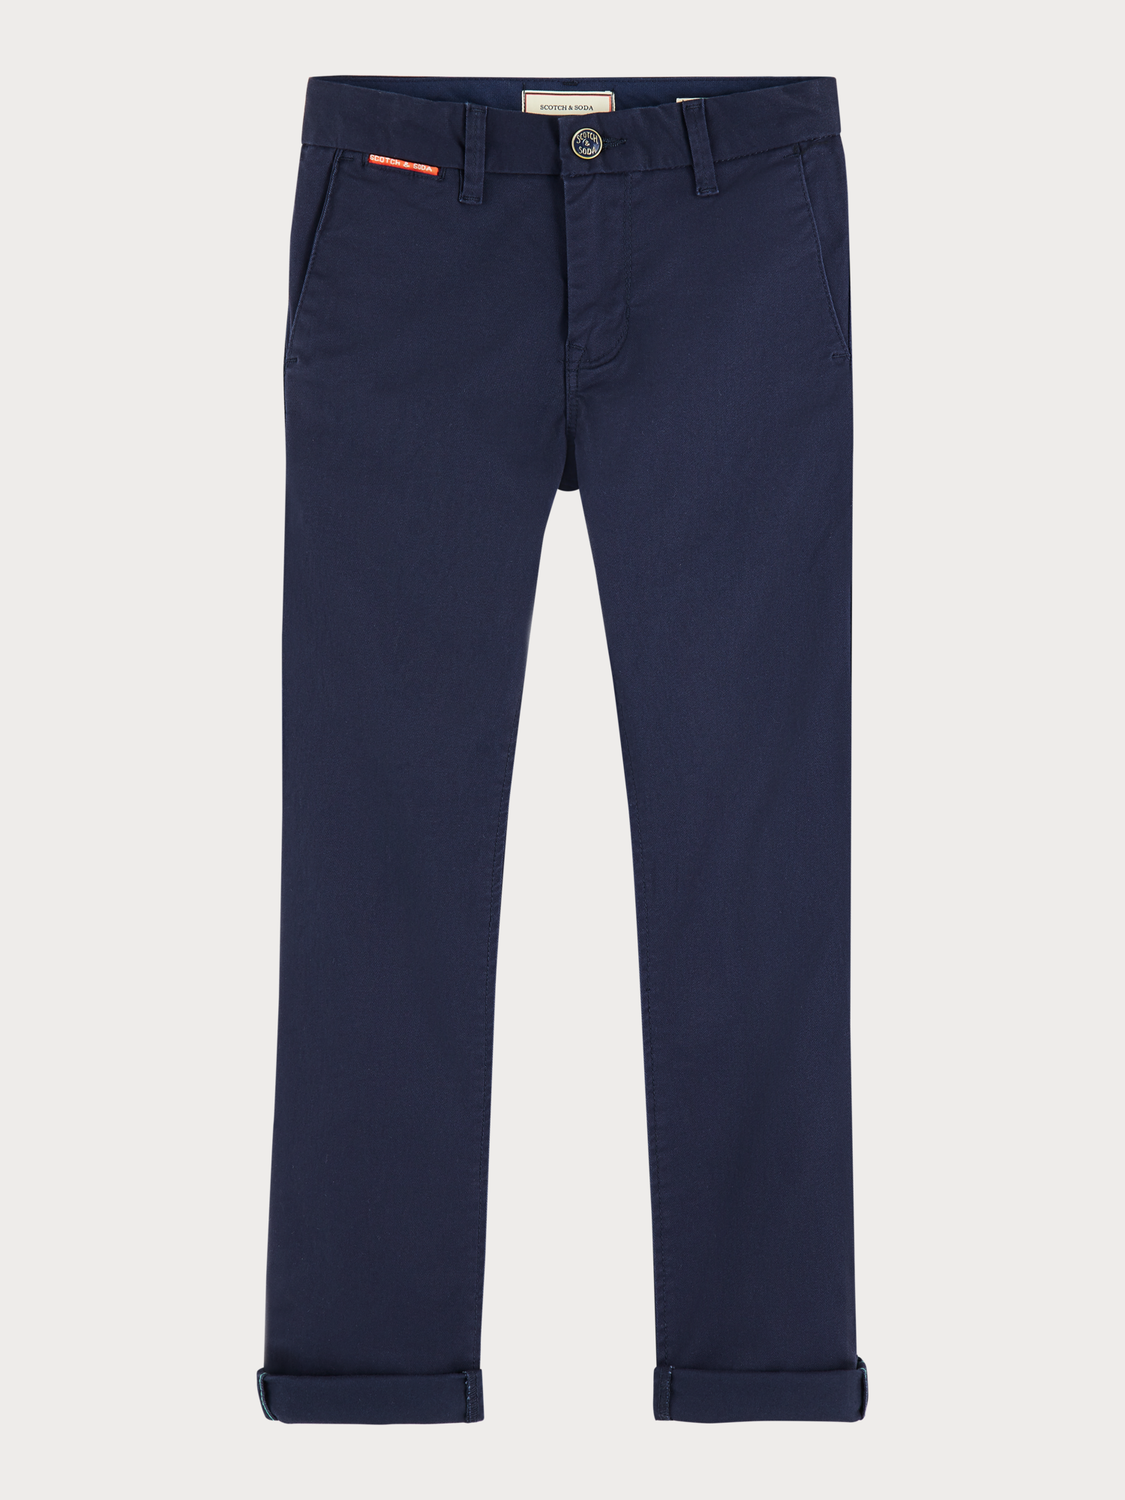 Boys Stretch cotton chinos | Slim fit